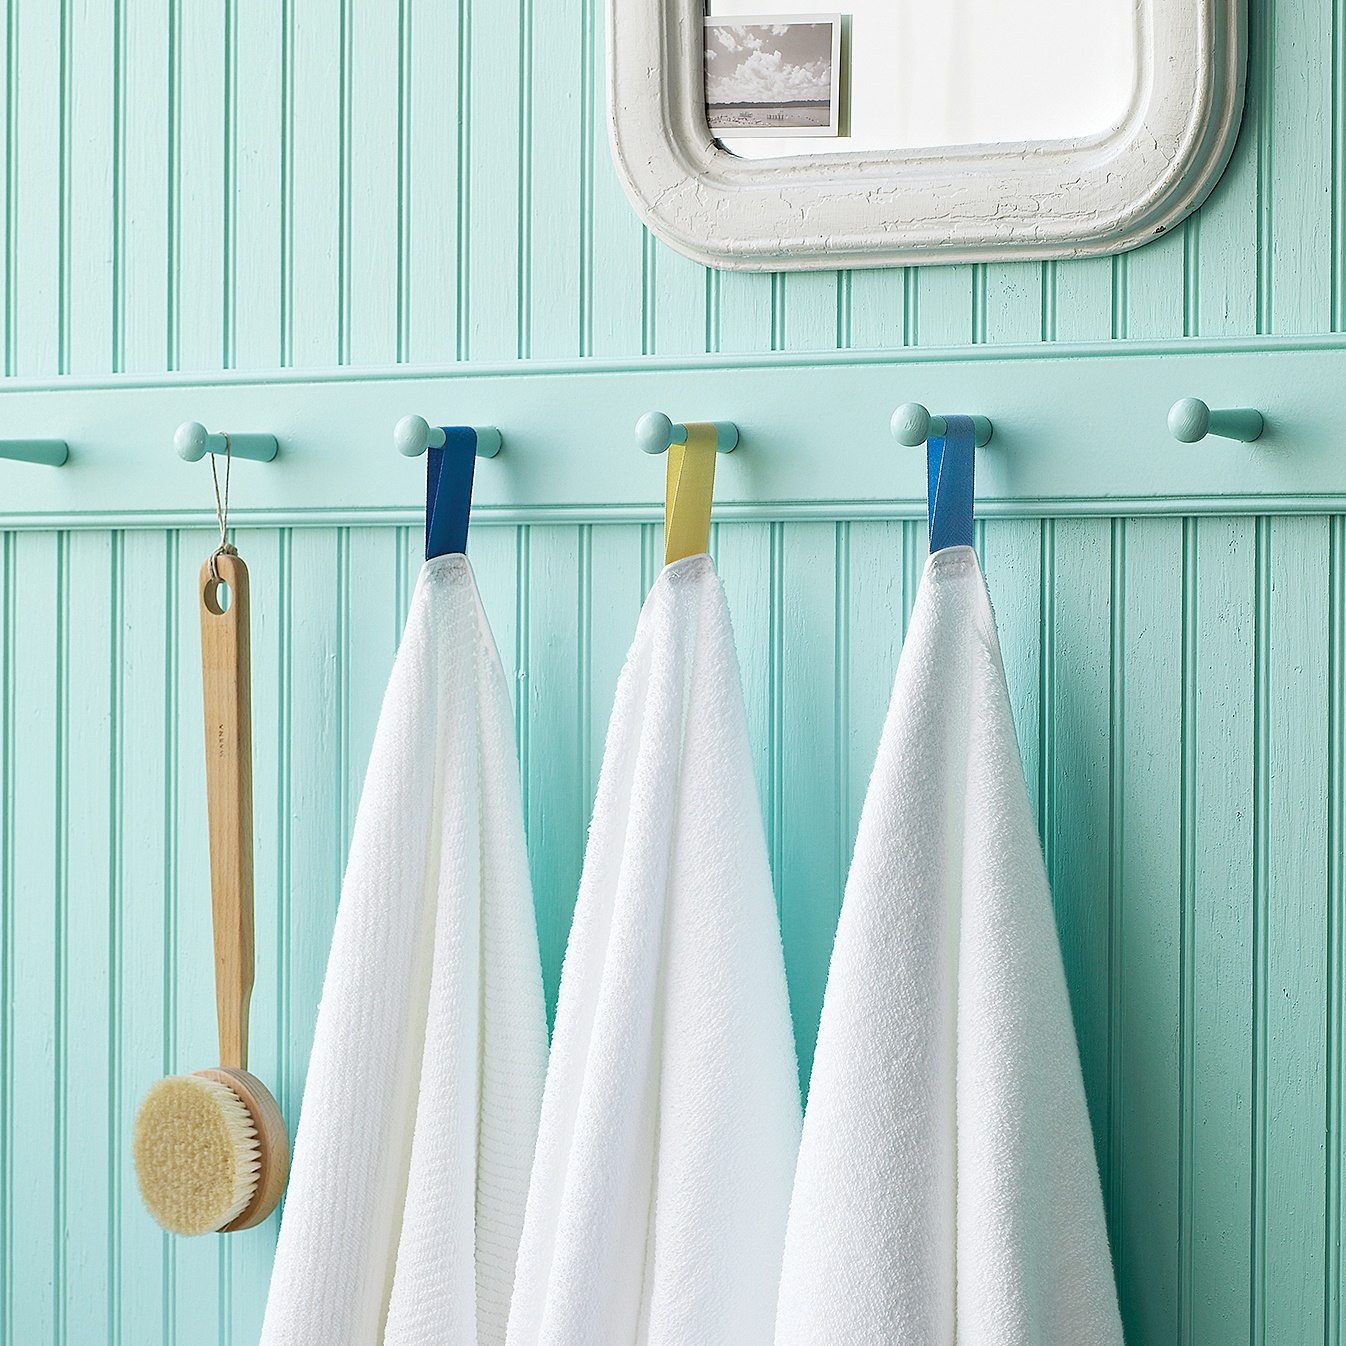 Blue Arrange The Towels In Your Bathroom (View 7 of 10)